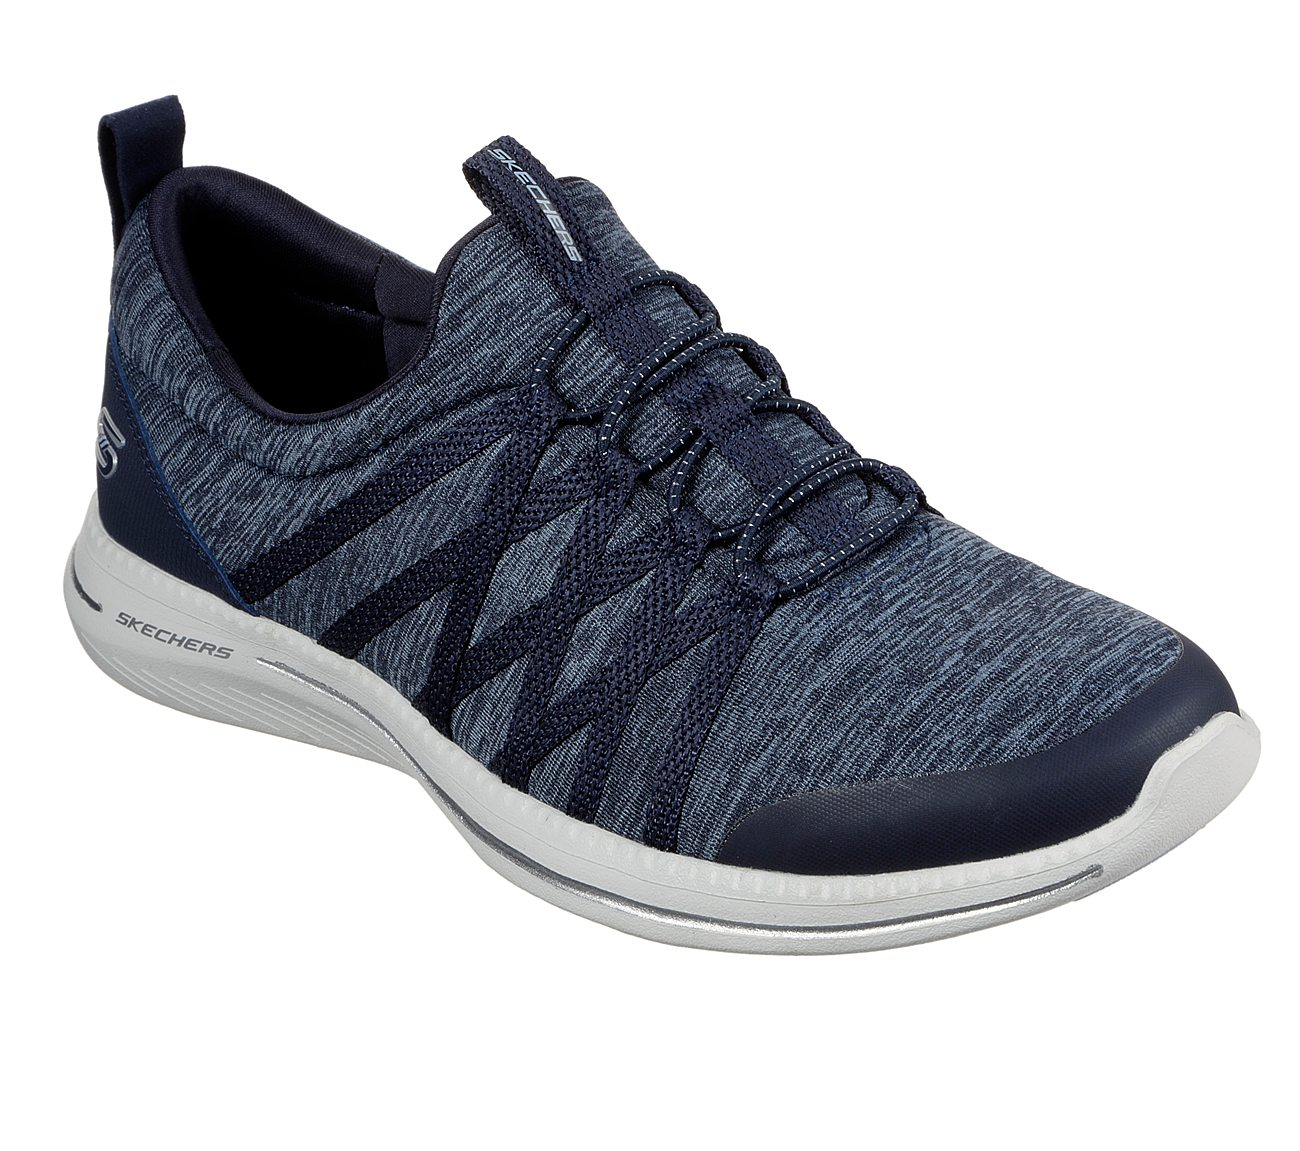 Siesta Médico diario  Buy SKECHERS City Pro - What A Vision Modern Comfort Shoes